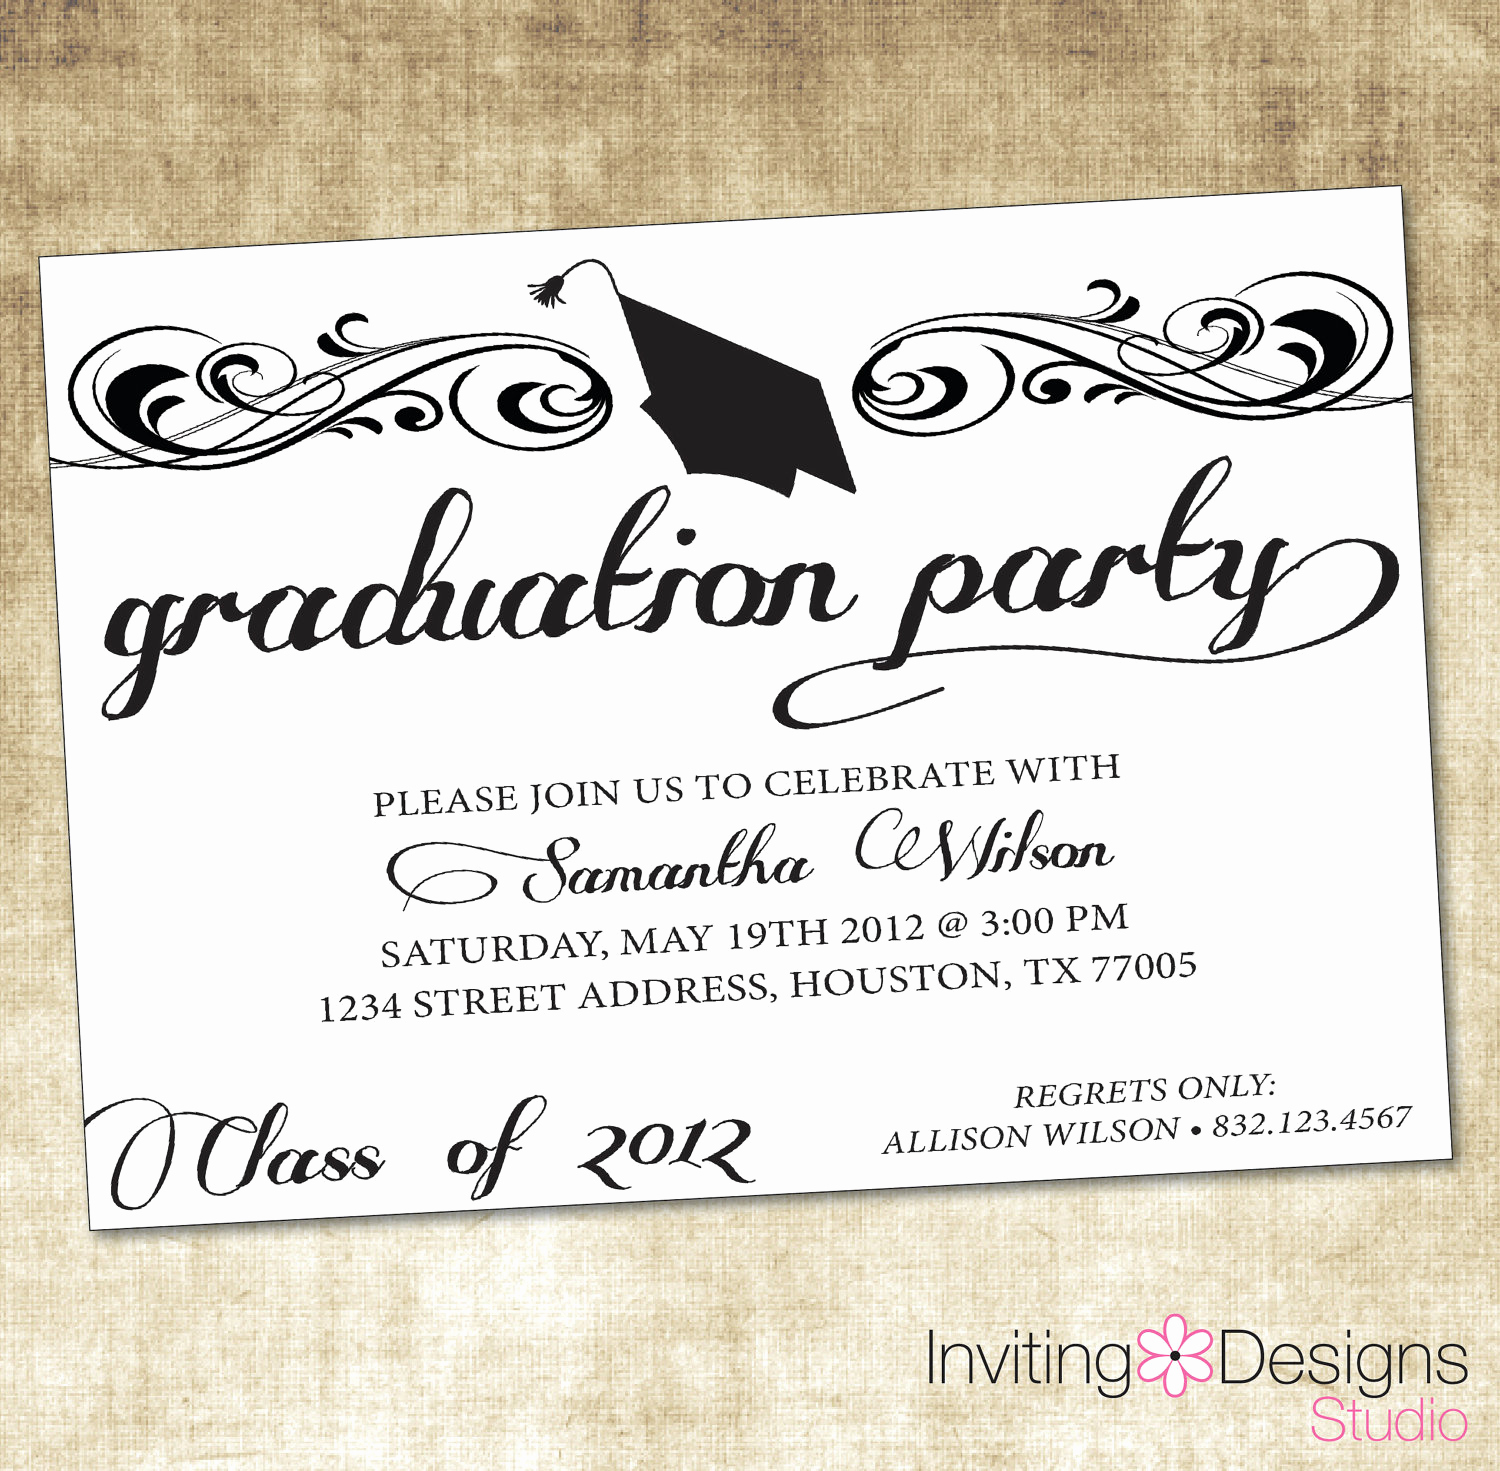 Graduation Reception Invitation Wording Beautiful Quotes for Graduation Party Invitations Quotesgram